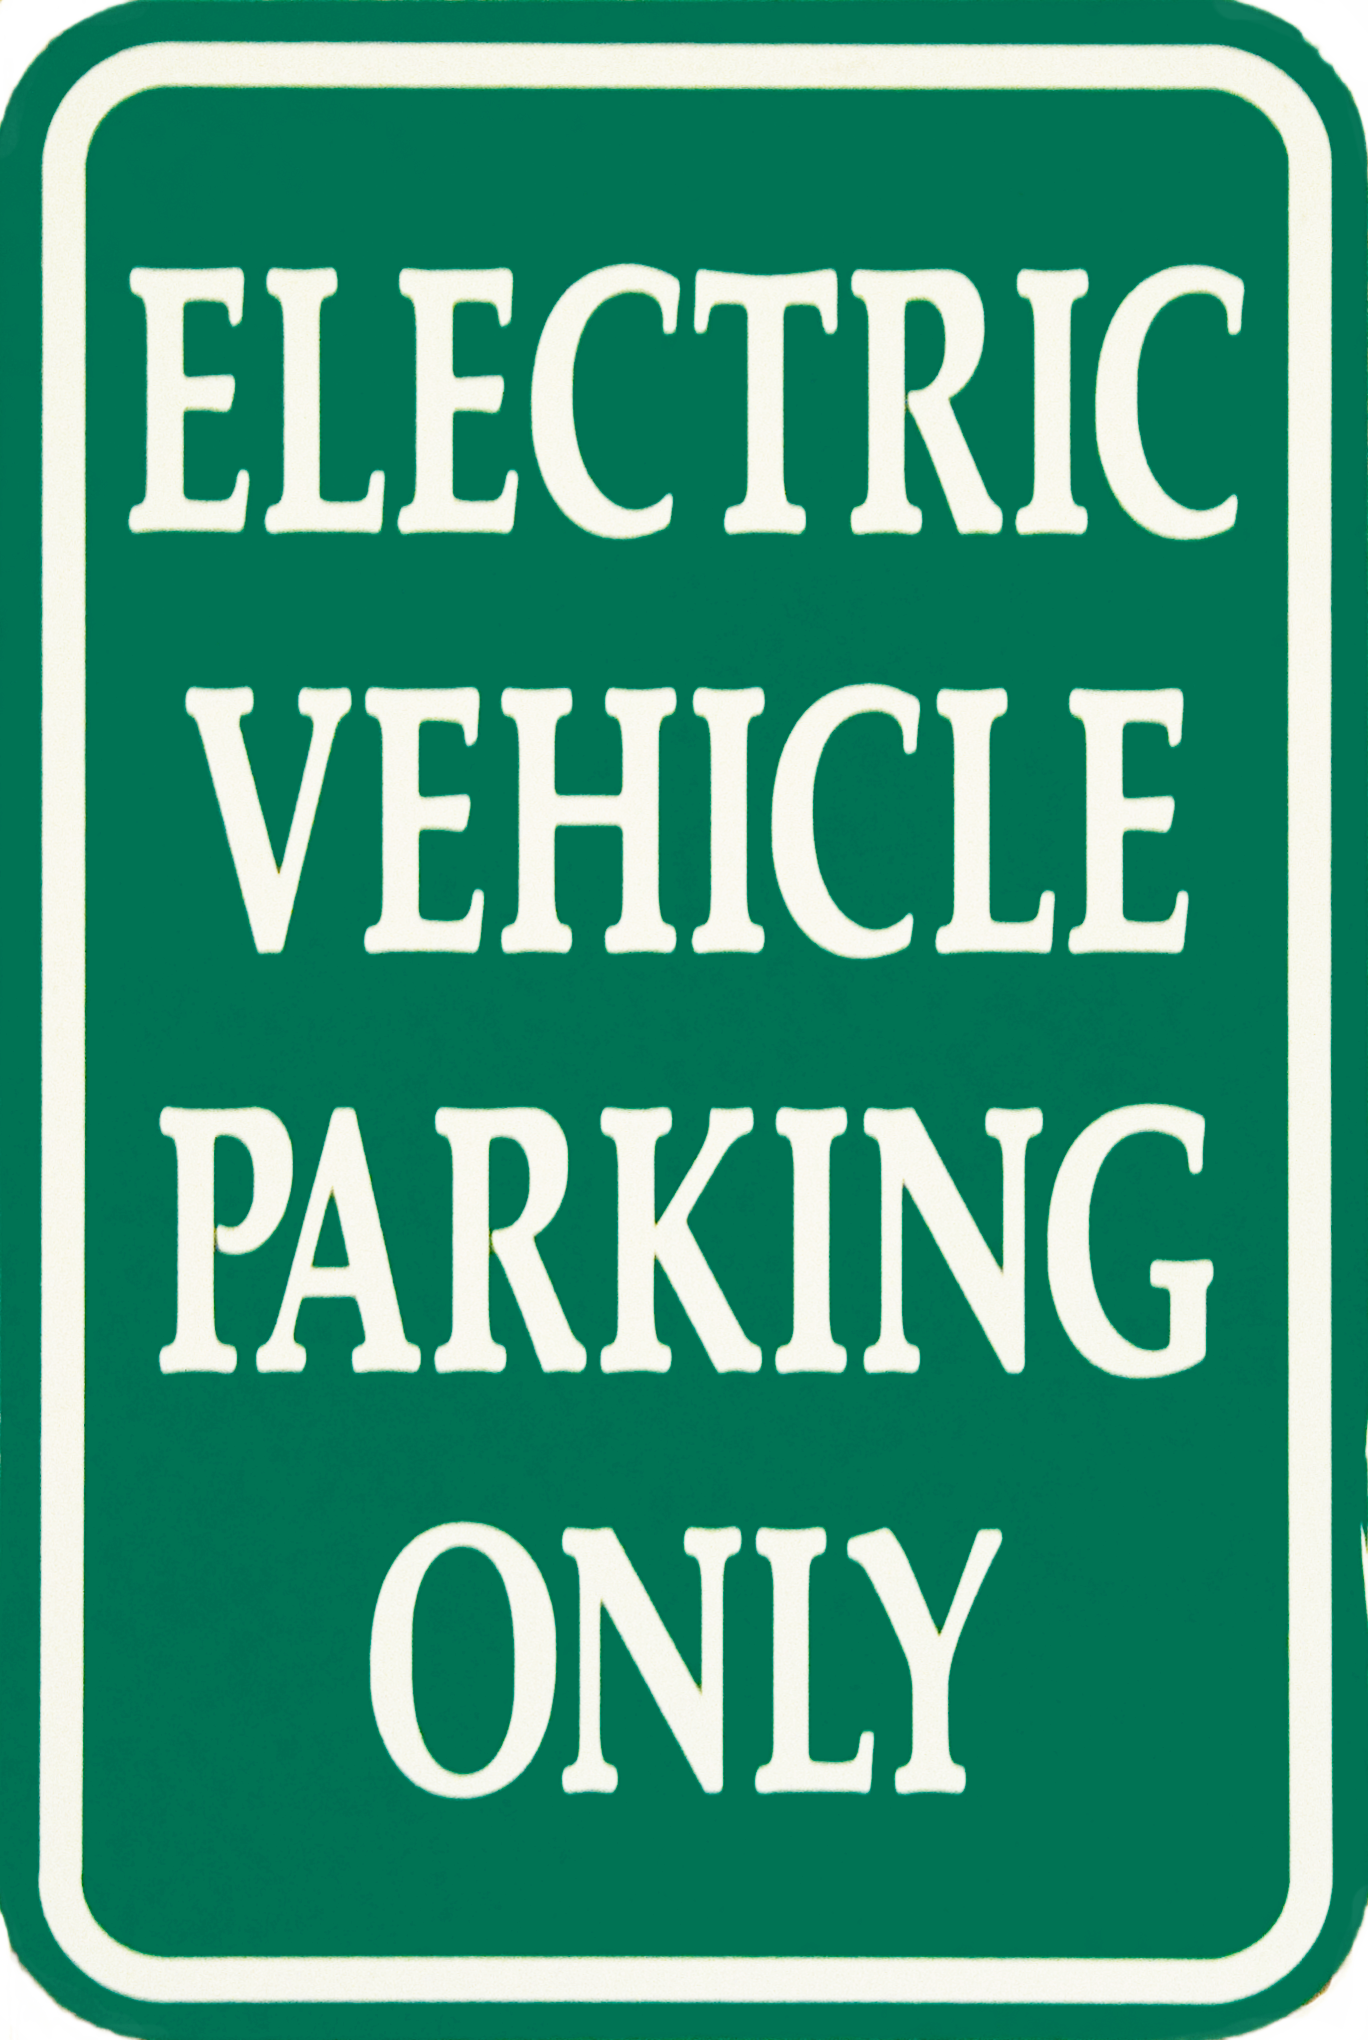 Electric Parking.png